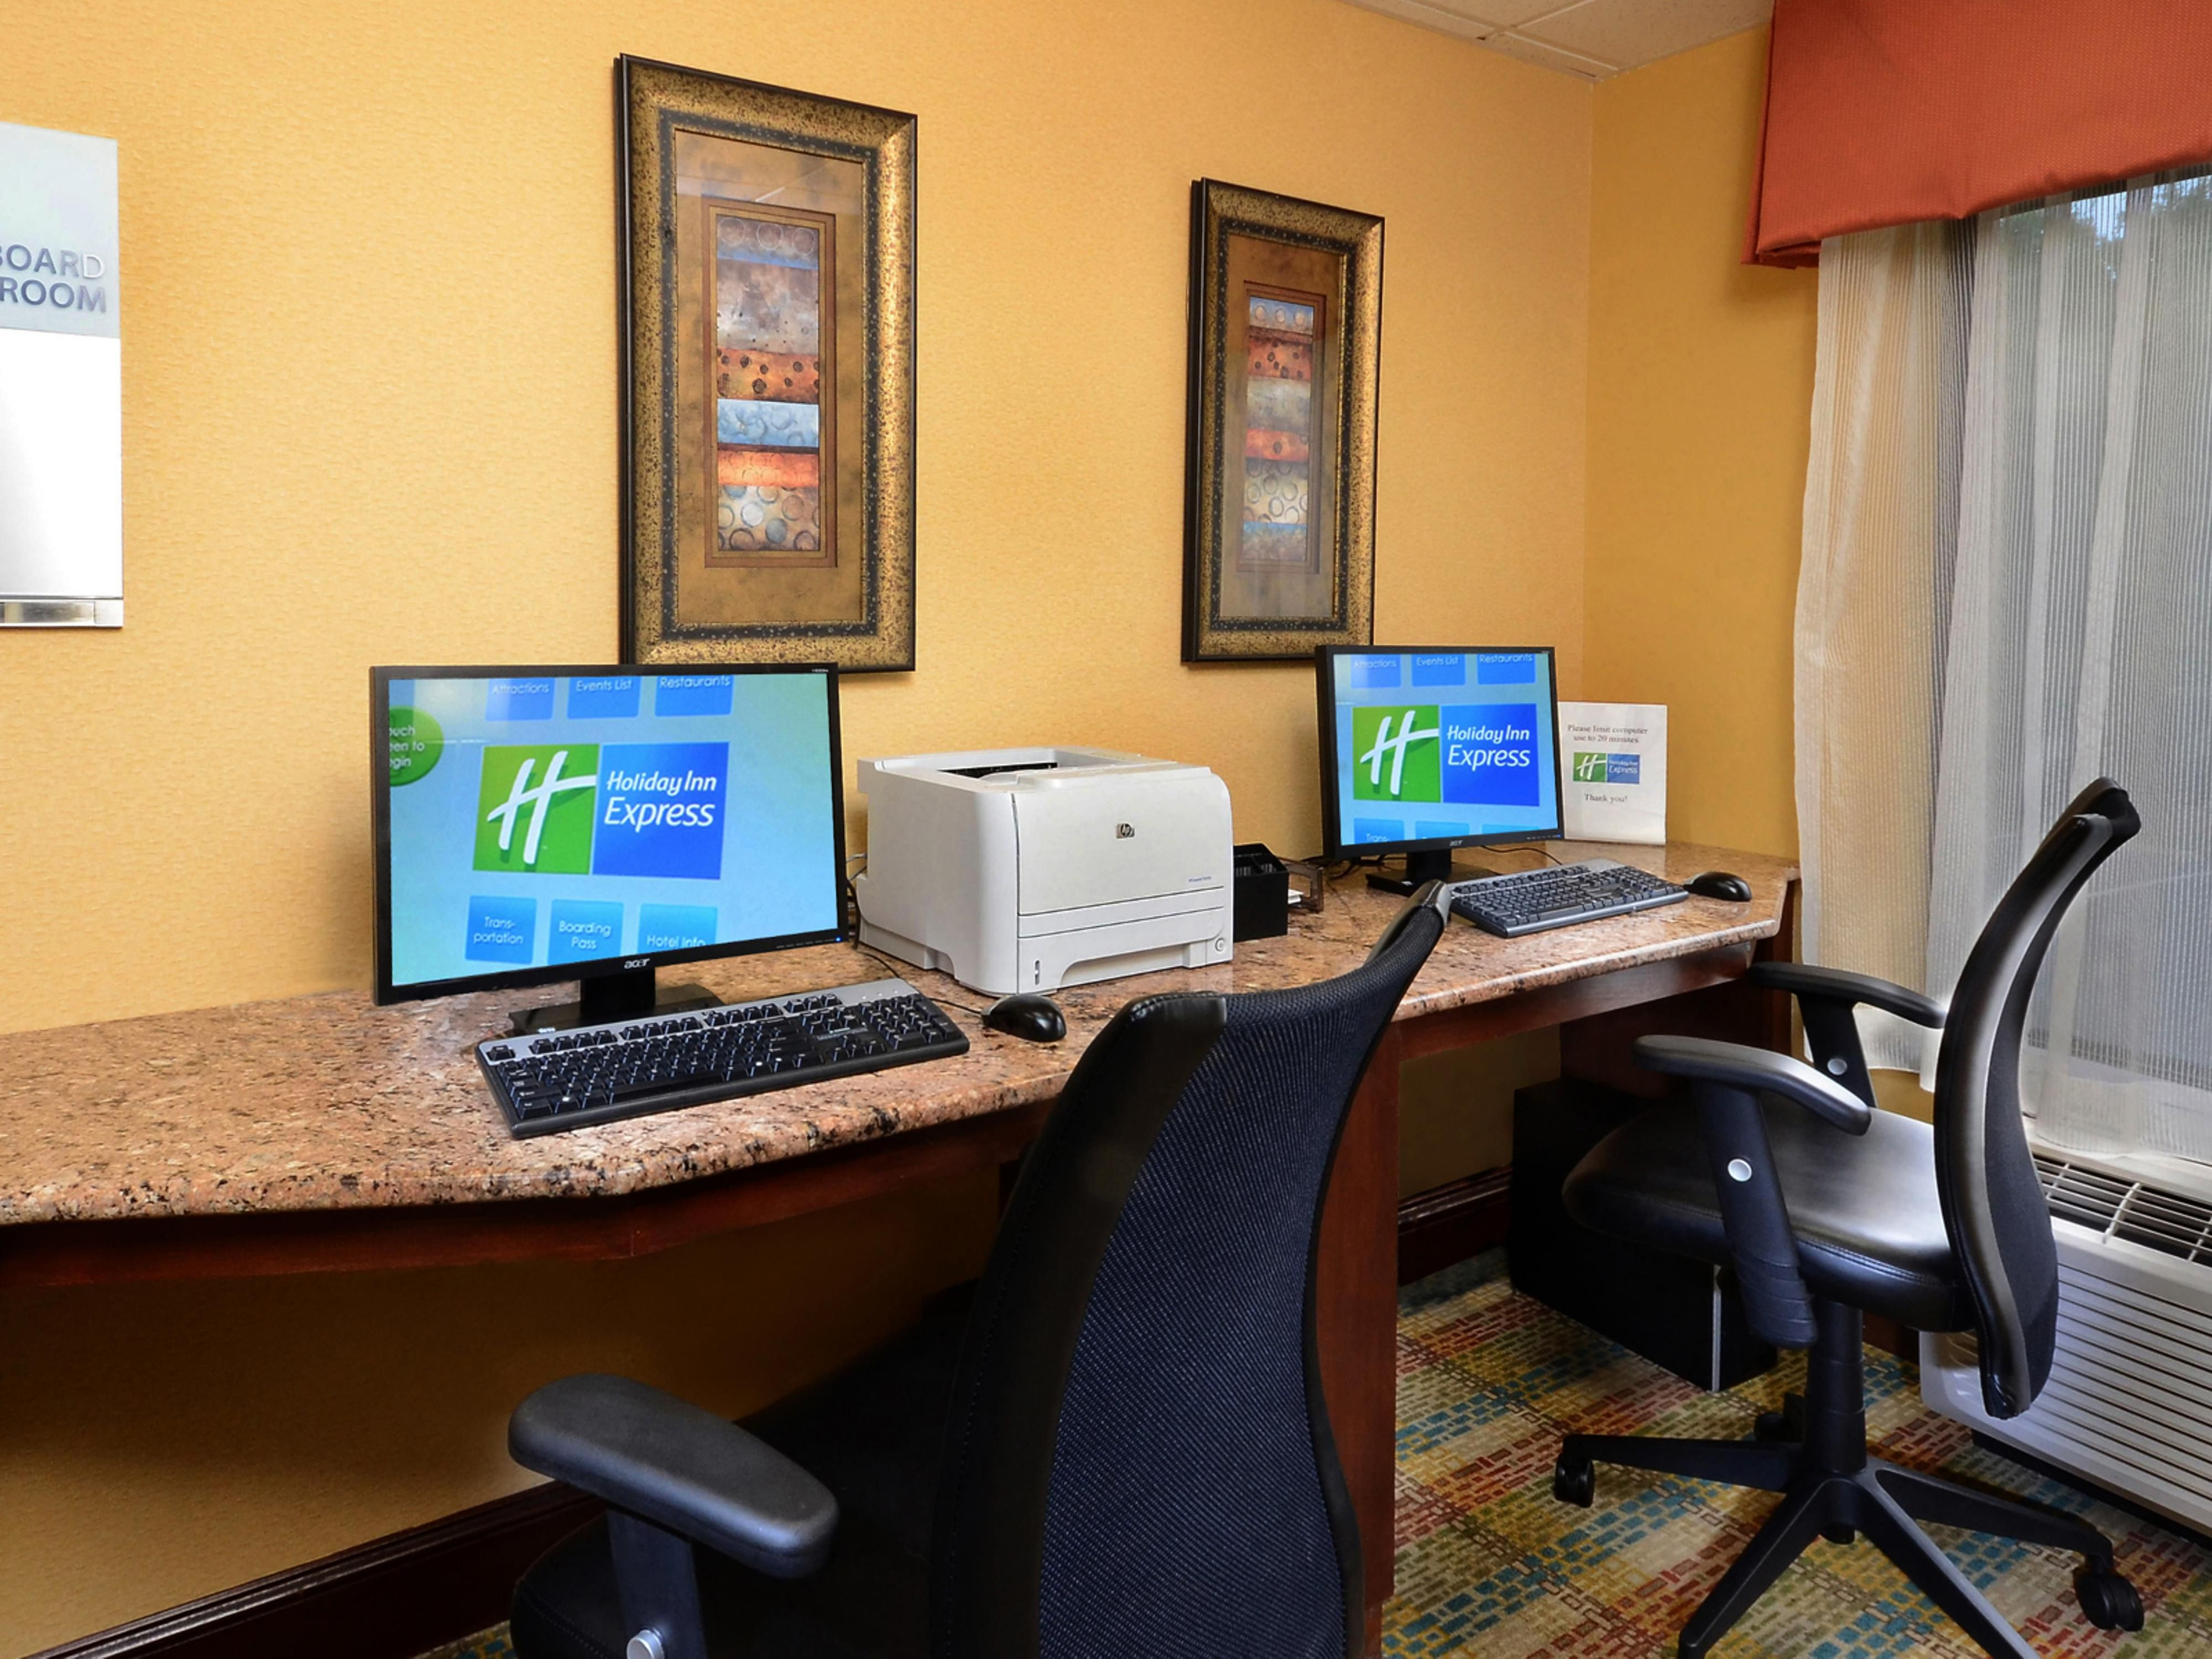 Keep up with work in our business center with Internet access